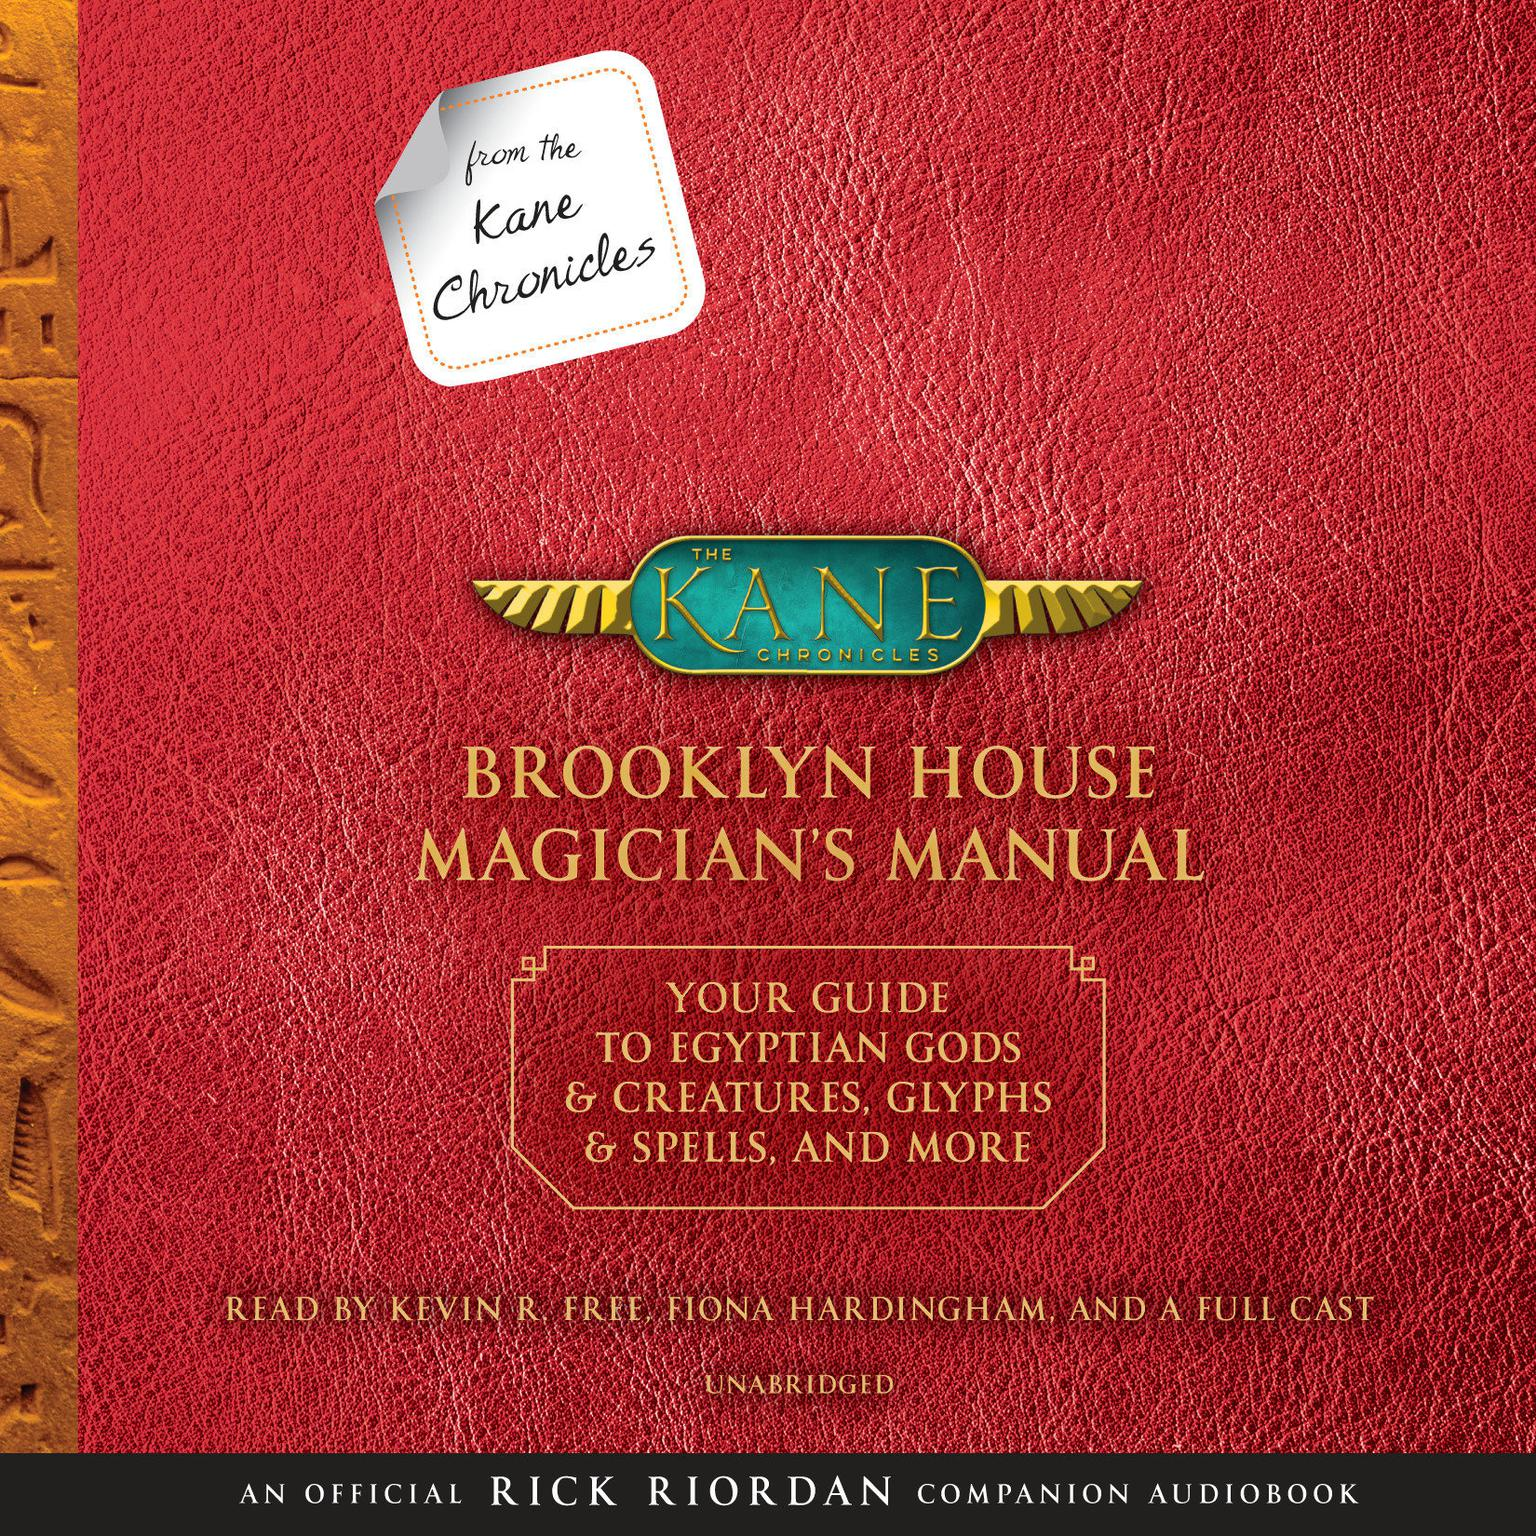 Printable From the Kane Chronicles: Brooklyn House Magician's Manual (An Official Rick Riordan Companion Book): Your Guide to Egyptian Gods & Creatures, Glyphs & Spells, & More Audiobook Cover Art